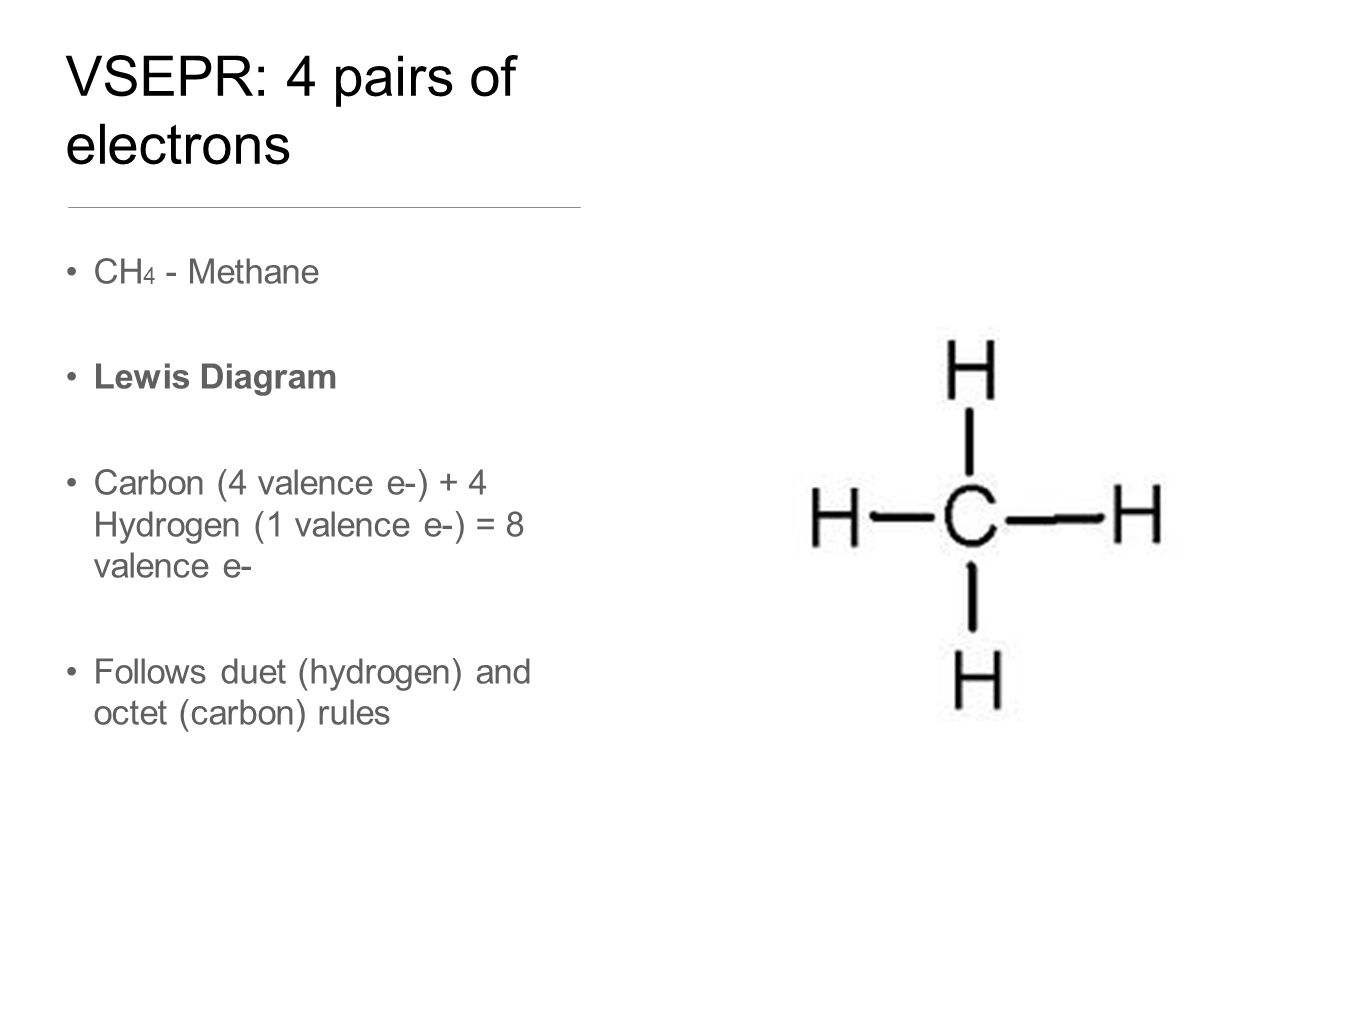 VSEPR: 4 pairs of electrons CH 4 - Methane Lewis Diagram Carbon (4 valence e-) + 4 Hydrogen (1 valence e-) = 8 valence e- Follows duet (hydrogen) and octet (carbon) rules